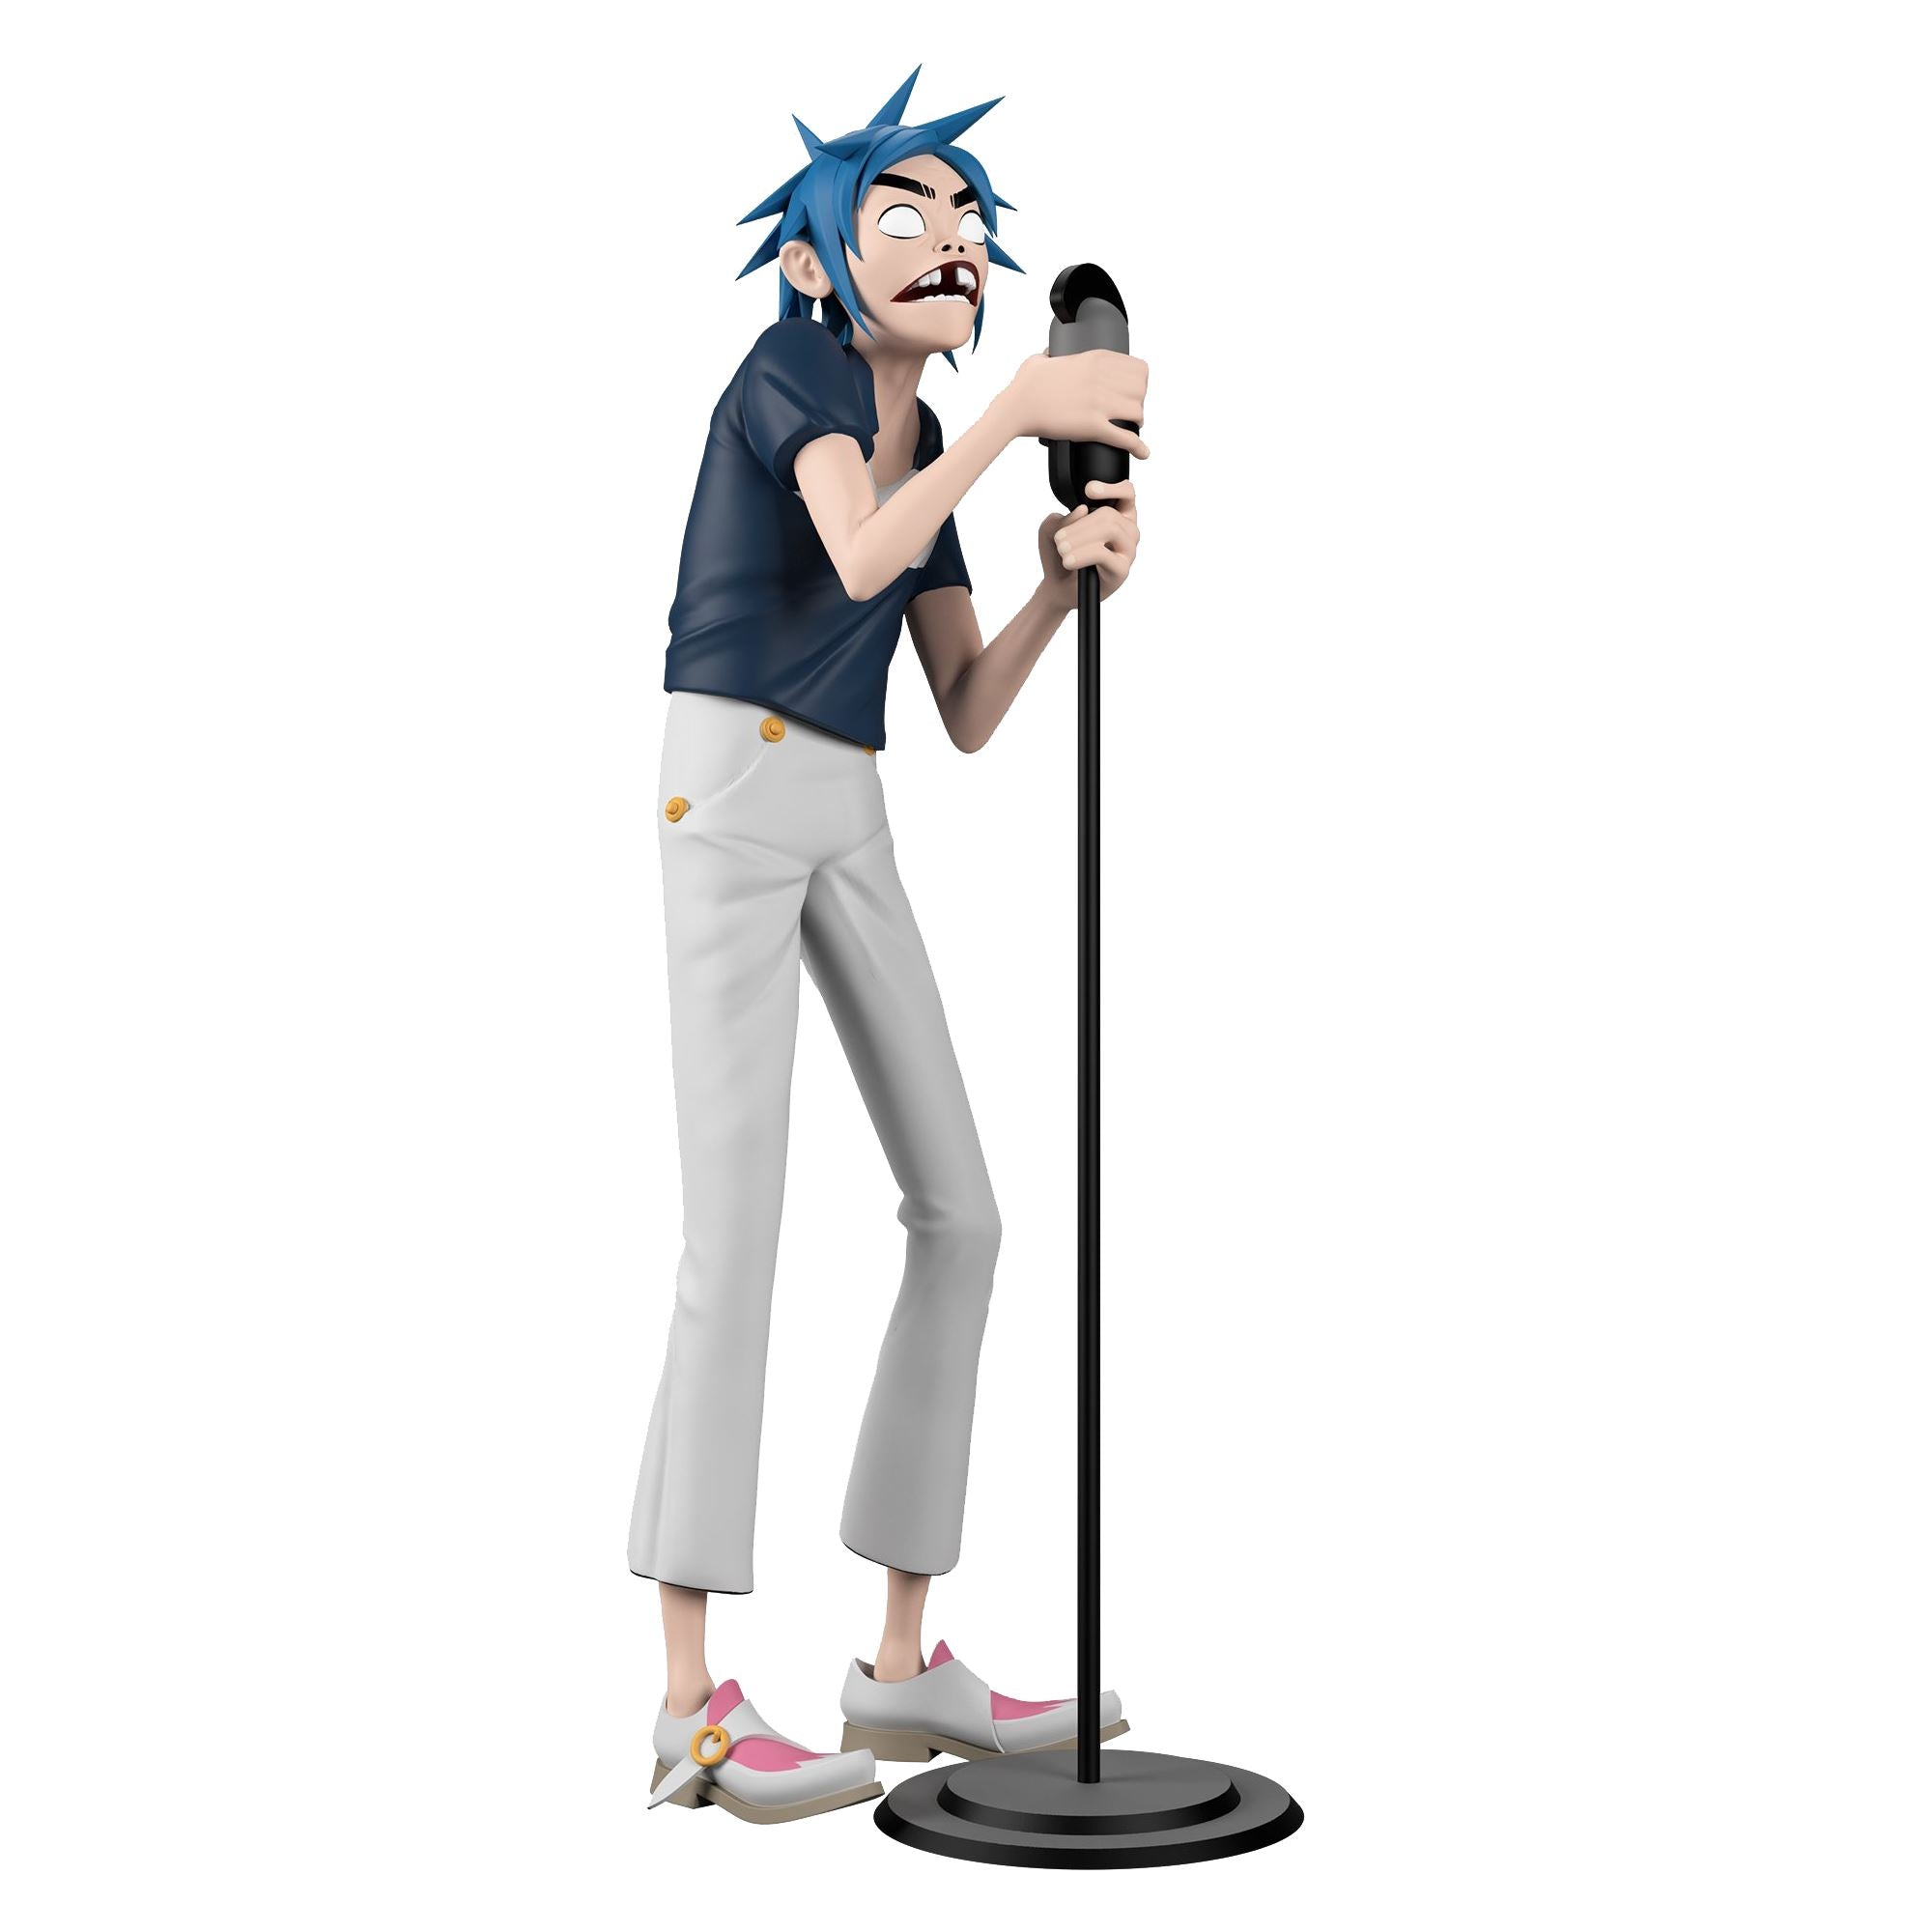 Superplastic x Gorillaz 2D 8-inch Vinyl Toy Superplastic